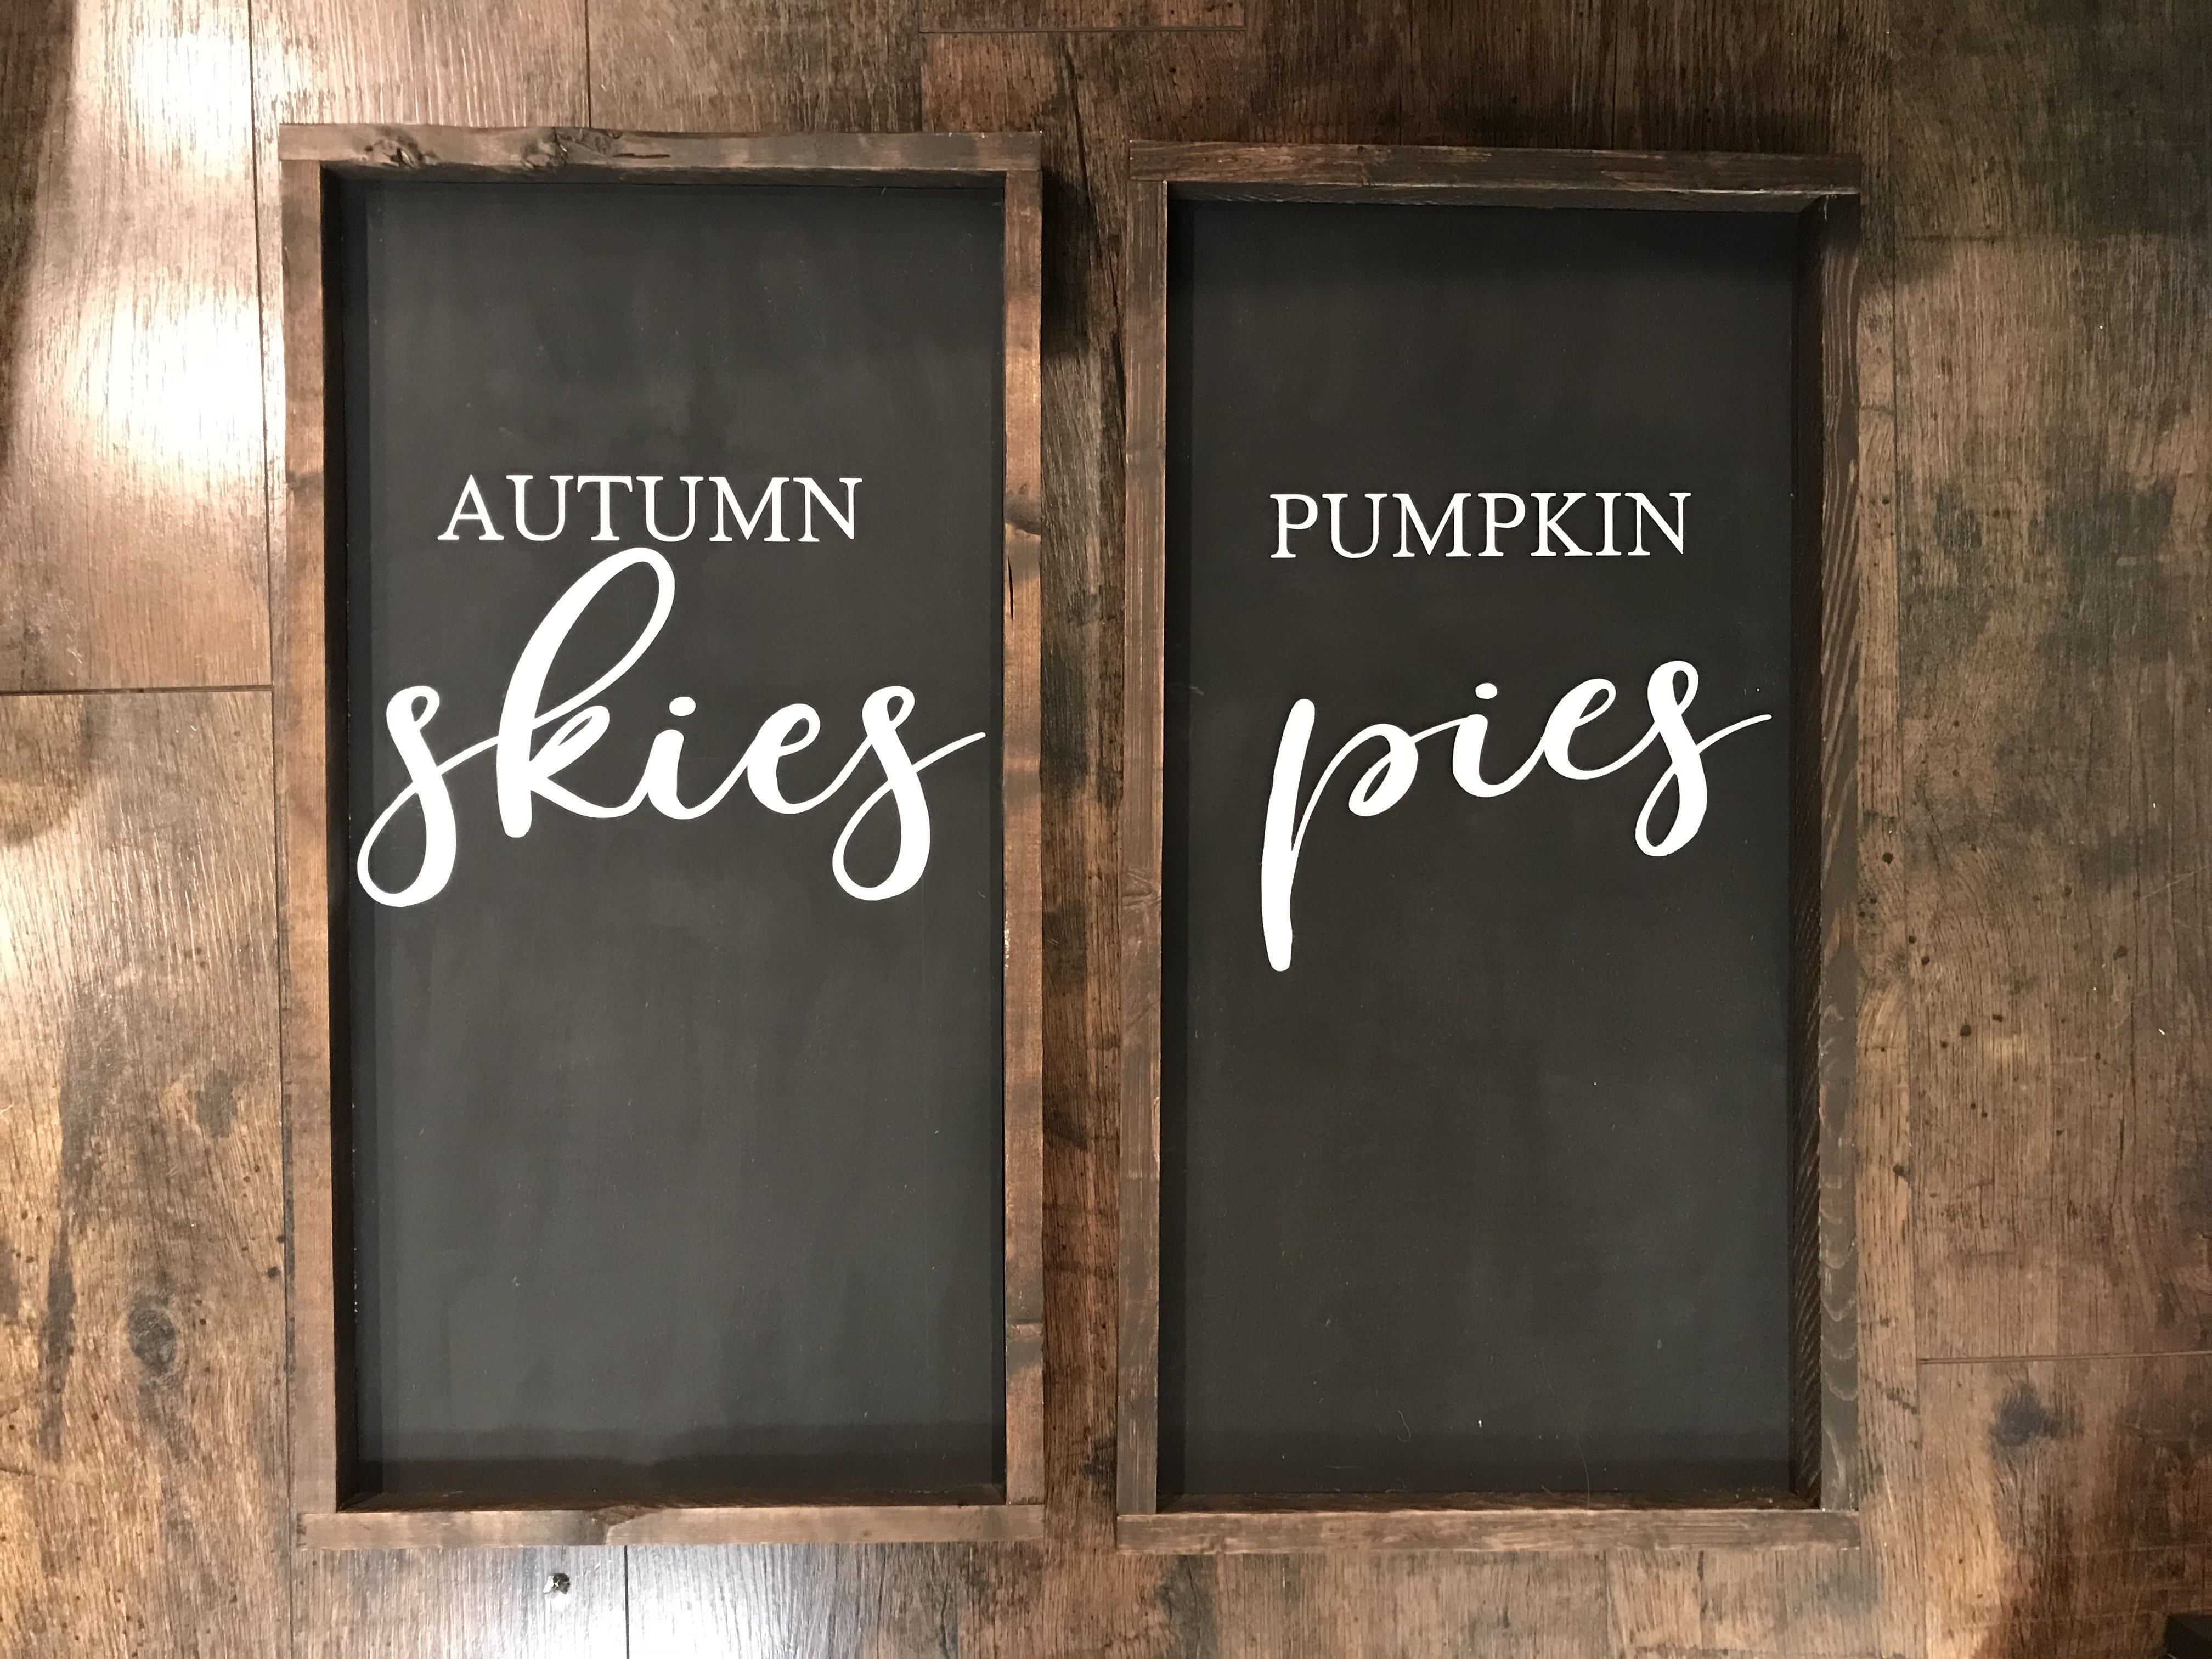 Set of 2 Autumn Skies Pumpkin Pies rcc50